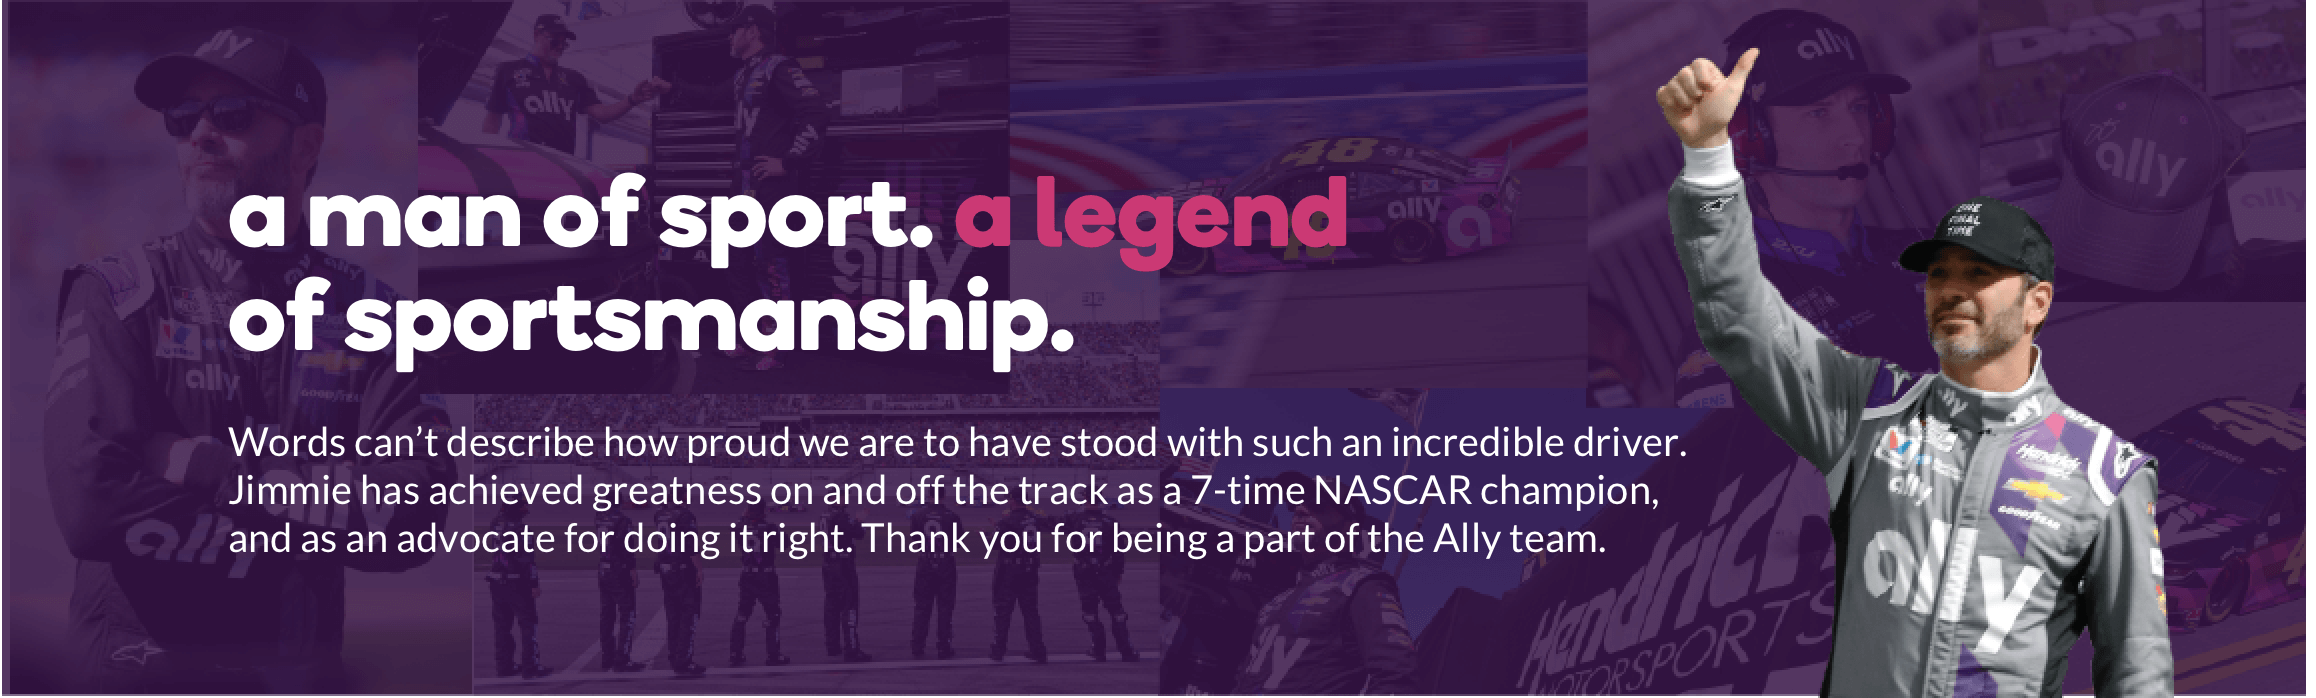 a man of sport, a legend of sportsmanship. Words can't describe how proud we are to have stood with such an incredible driver. Jimmie has achieved greatness on and off the track as a 7-time NASCAR champion, and as an advocate for doing it right. Thank you for being a part of the Ally team.